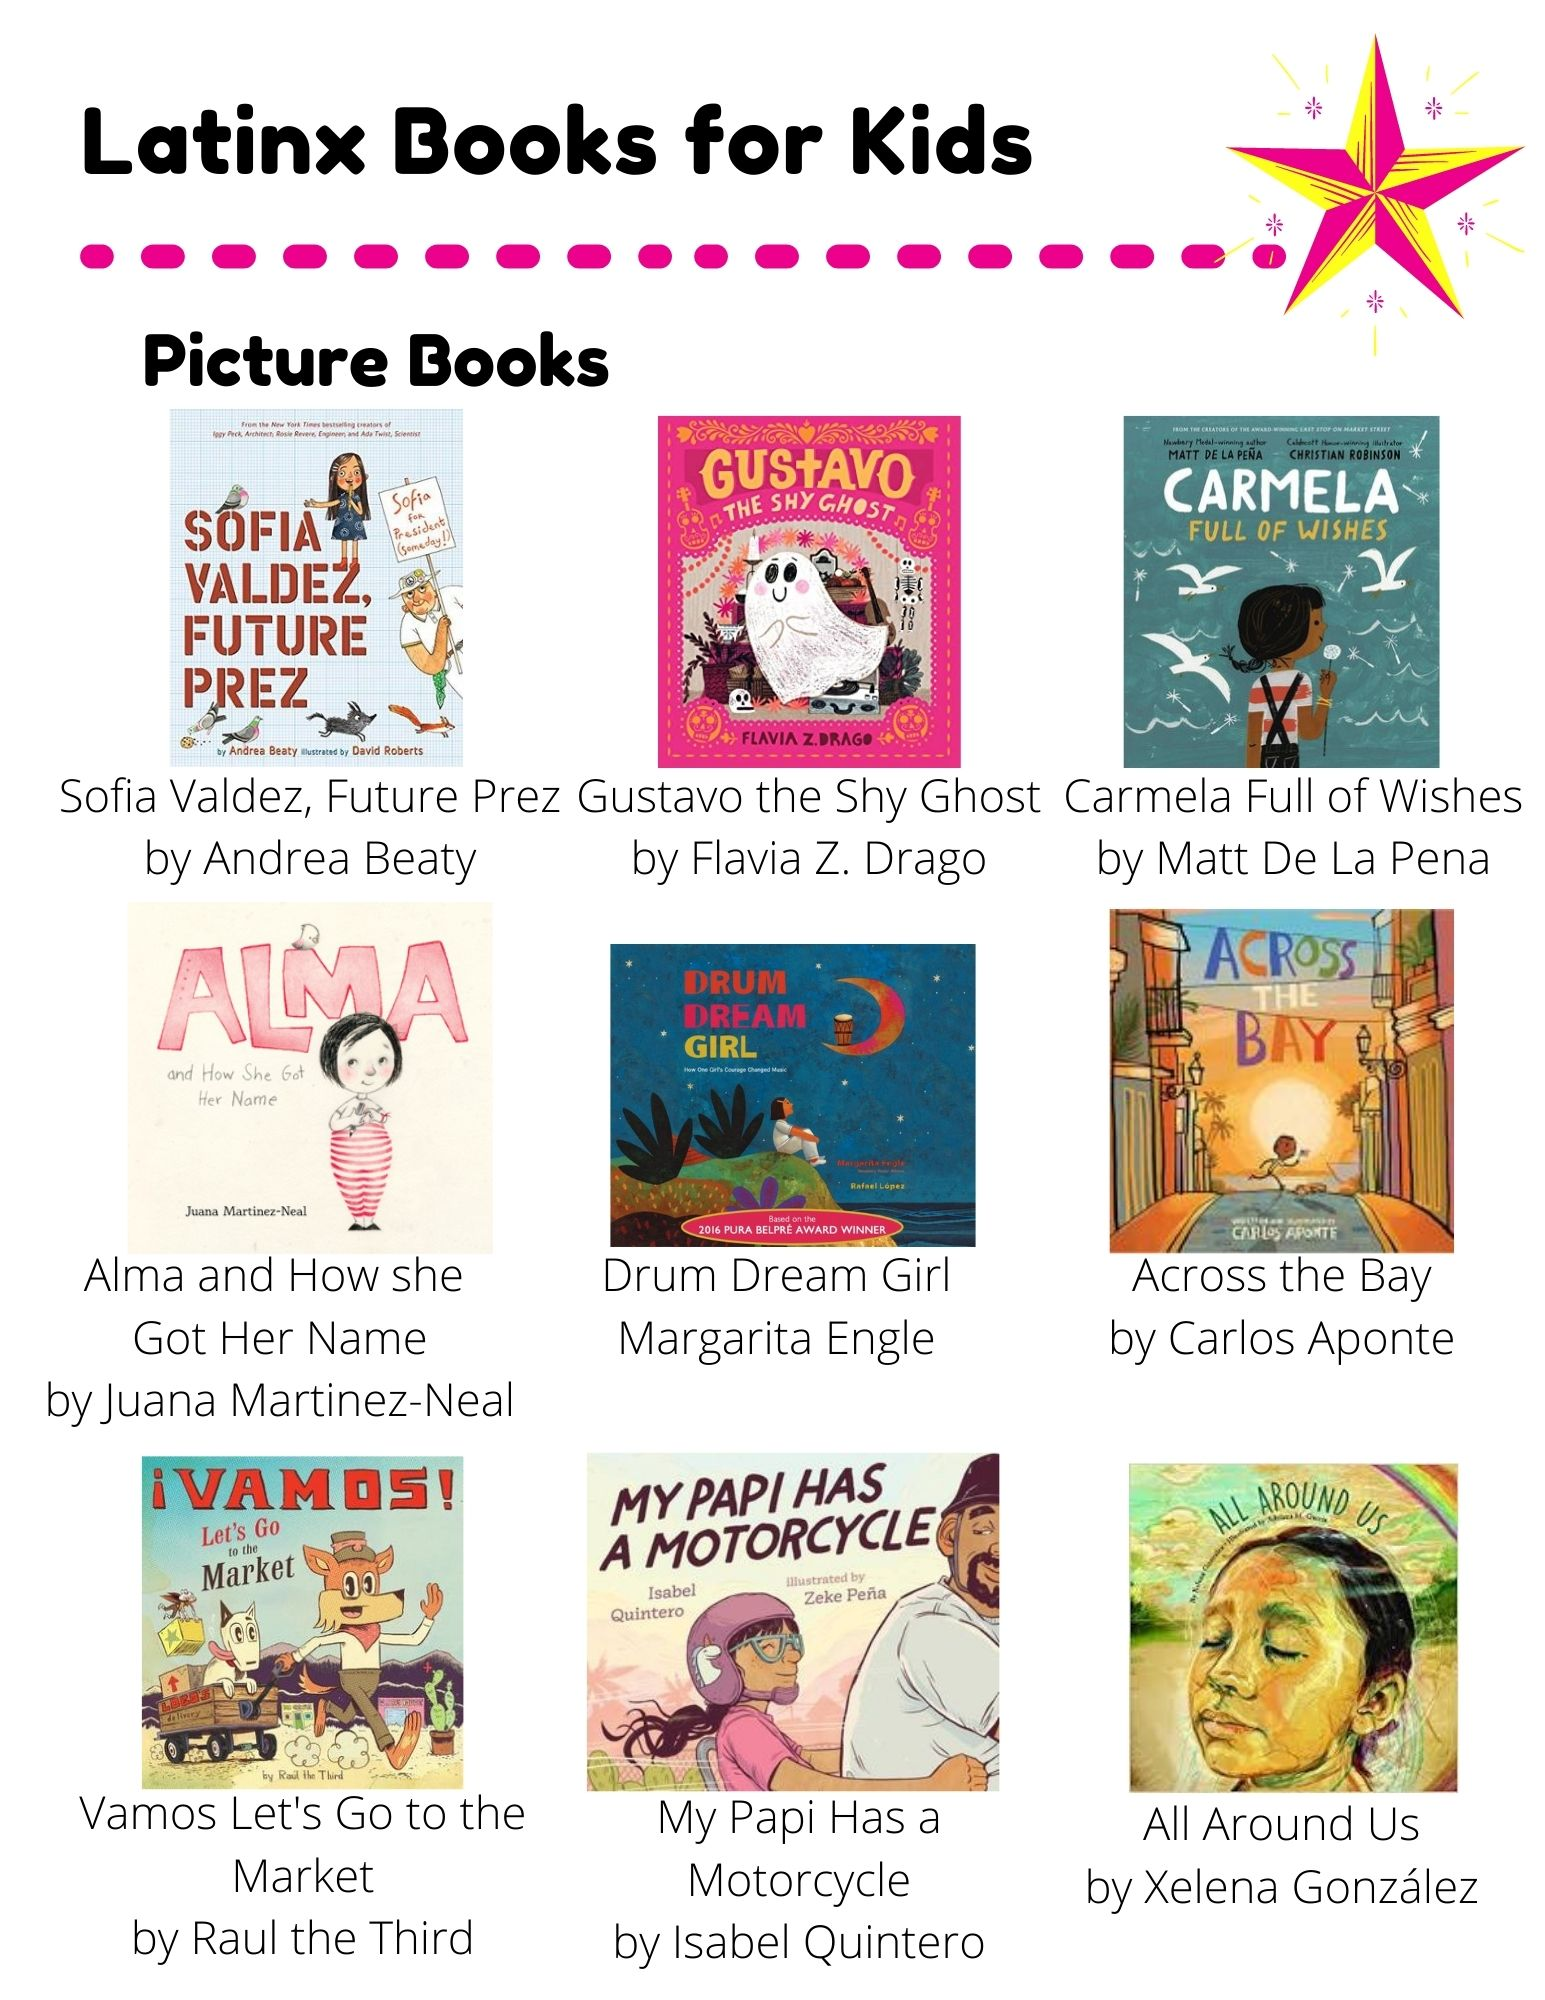 Latinx Books: Picture Books: Sofia Valdez, Future Prez by Andrea Beaty, Gustavo the Shy Ghost by Flavia Z. Drago, Carmela Full of Wishes by Matt De La Pena, Alma and How she  Got Her Name by Juana Martinez-Neal, Drum Dream Girl Margarita Engle, Across the Bay by Carlos Aponte, Vamos Let's Go to the Market by Raul the Third, My Papi Has a Motorcycle by Isabel Quintero, All Around Us by Xelena González. Chapter Books: Sal & Gabi Break  the Universe by Carlos Hernandez, The First Rule of Punk by Celia C. Perez, The Epic Fail of Arturo Zamora by Pablo Cartaya, The Lightning Dreamer by Margarita Engle, The Only Road by Alexandra Diaz, Lety Out Loud by Angela Cervantes. Non-Fiction Books: Yes! We Are Latinos by Alma Flor Ada, Planting Stories by Anika Aldamuy Denise, Bravo! by Margarita Engle.